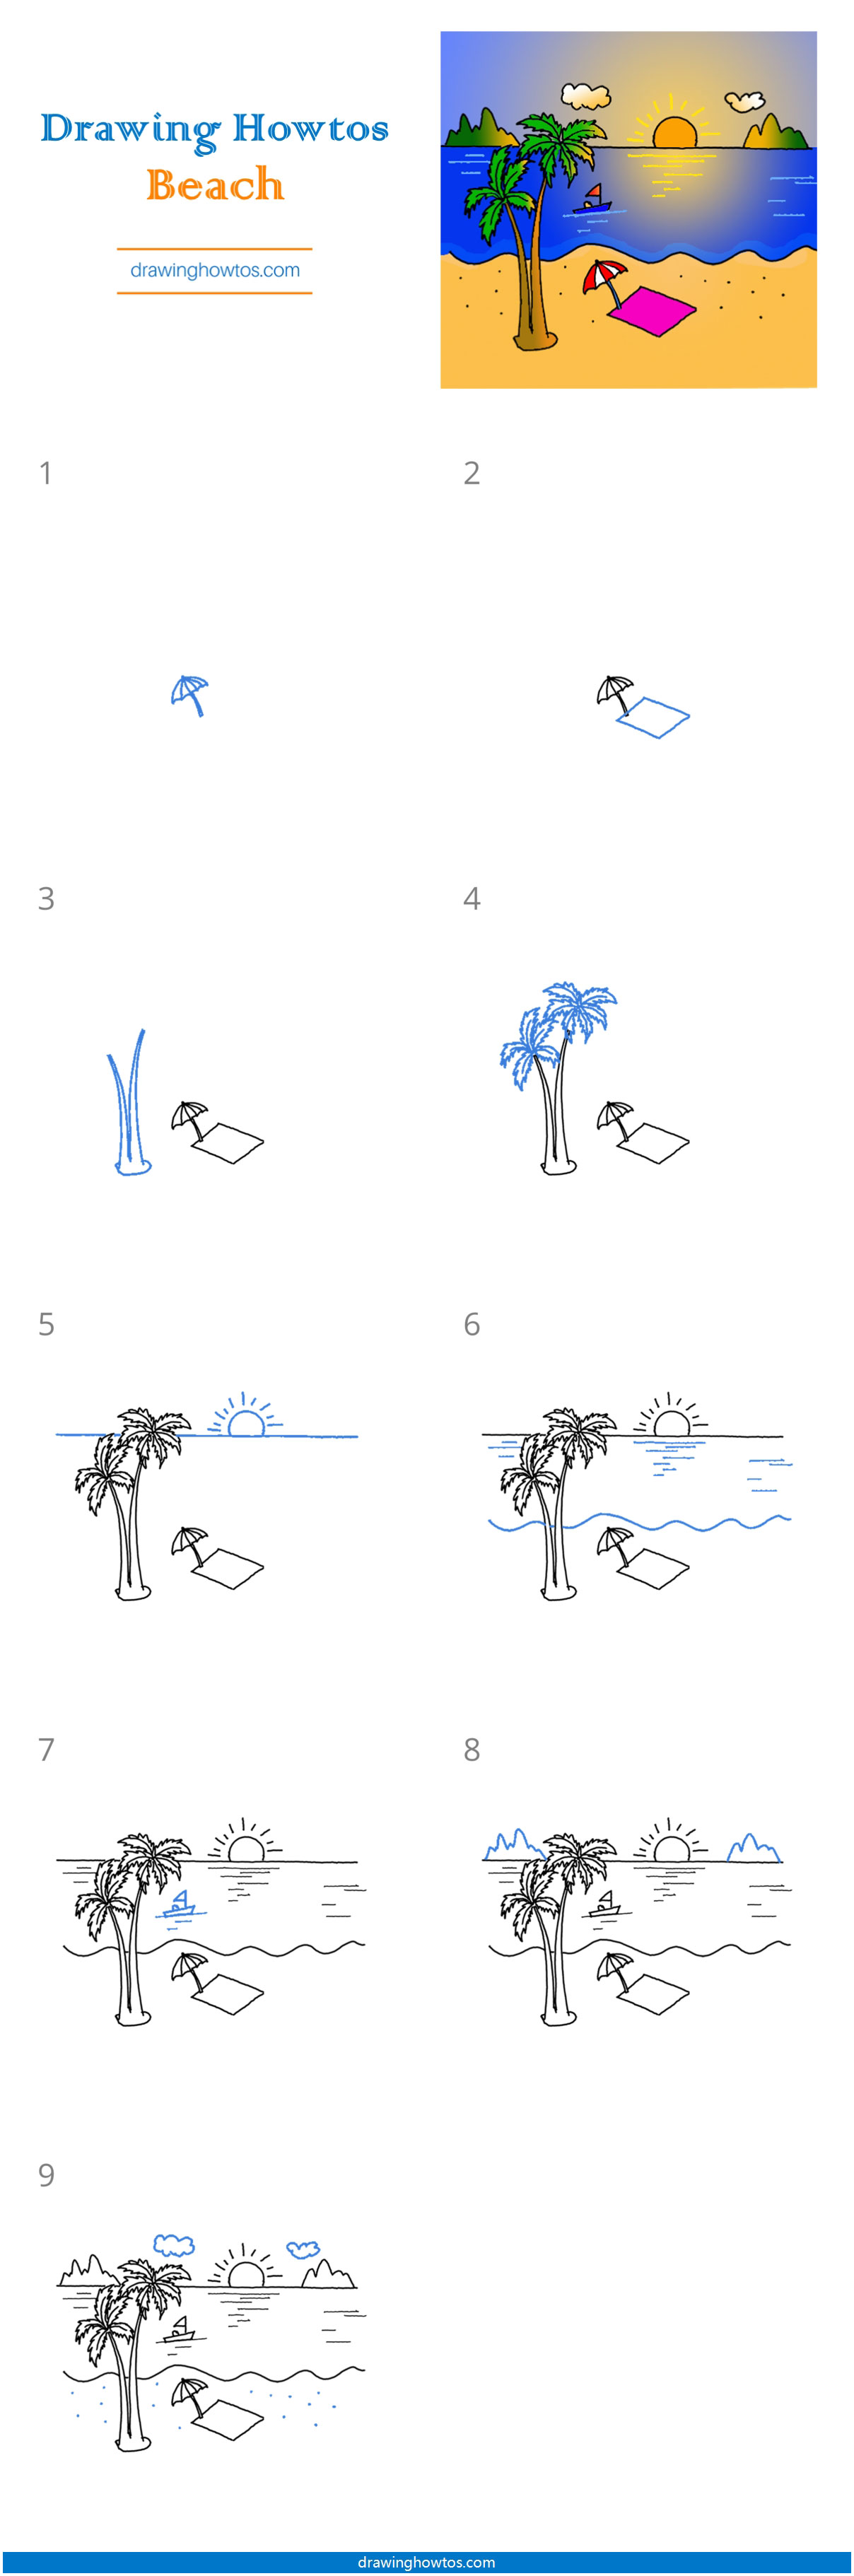 How To Draw A Beach Scene Step By Step Easy Drawing Guides Drawing Howtos